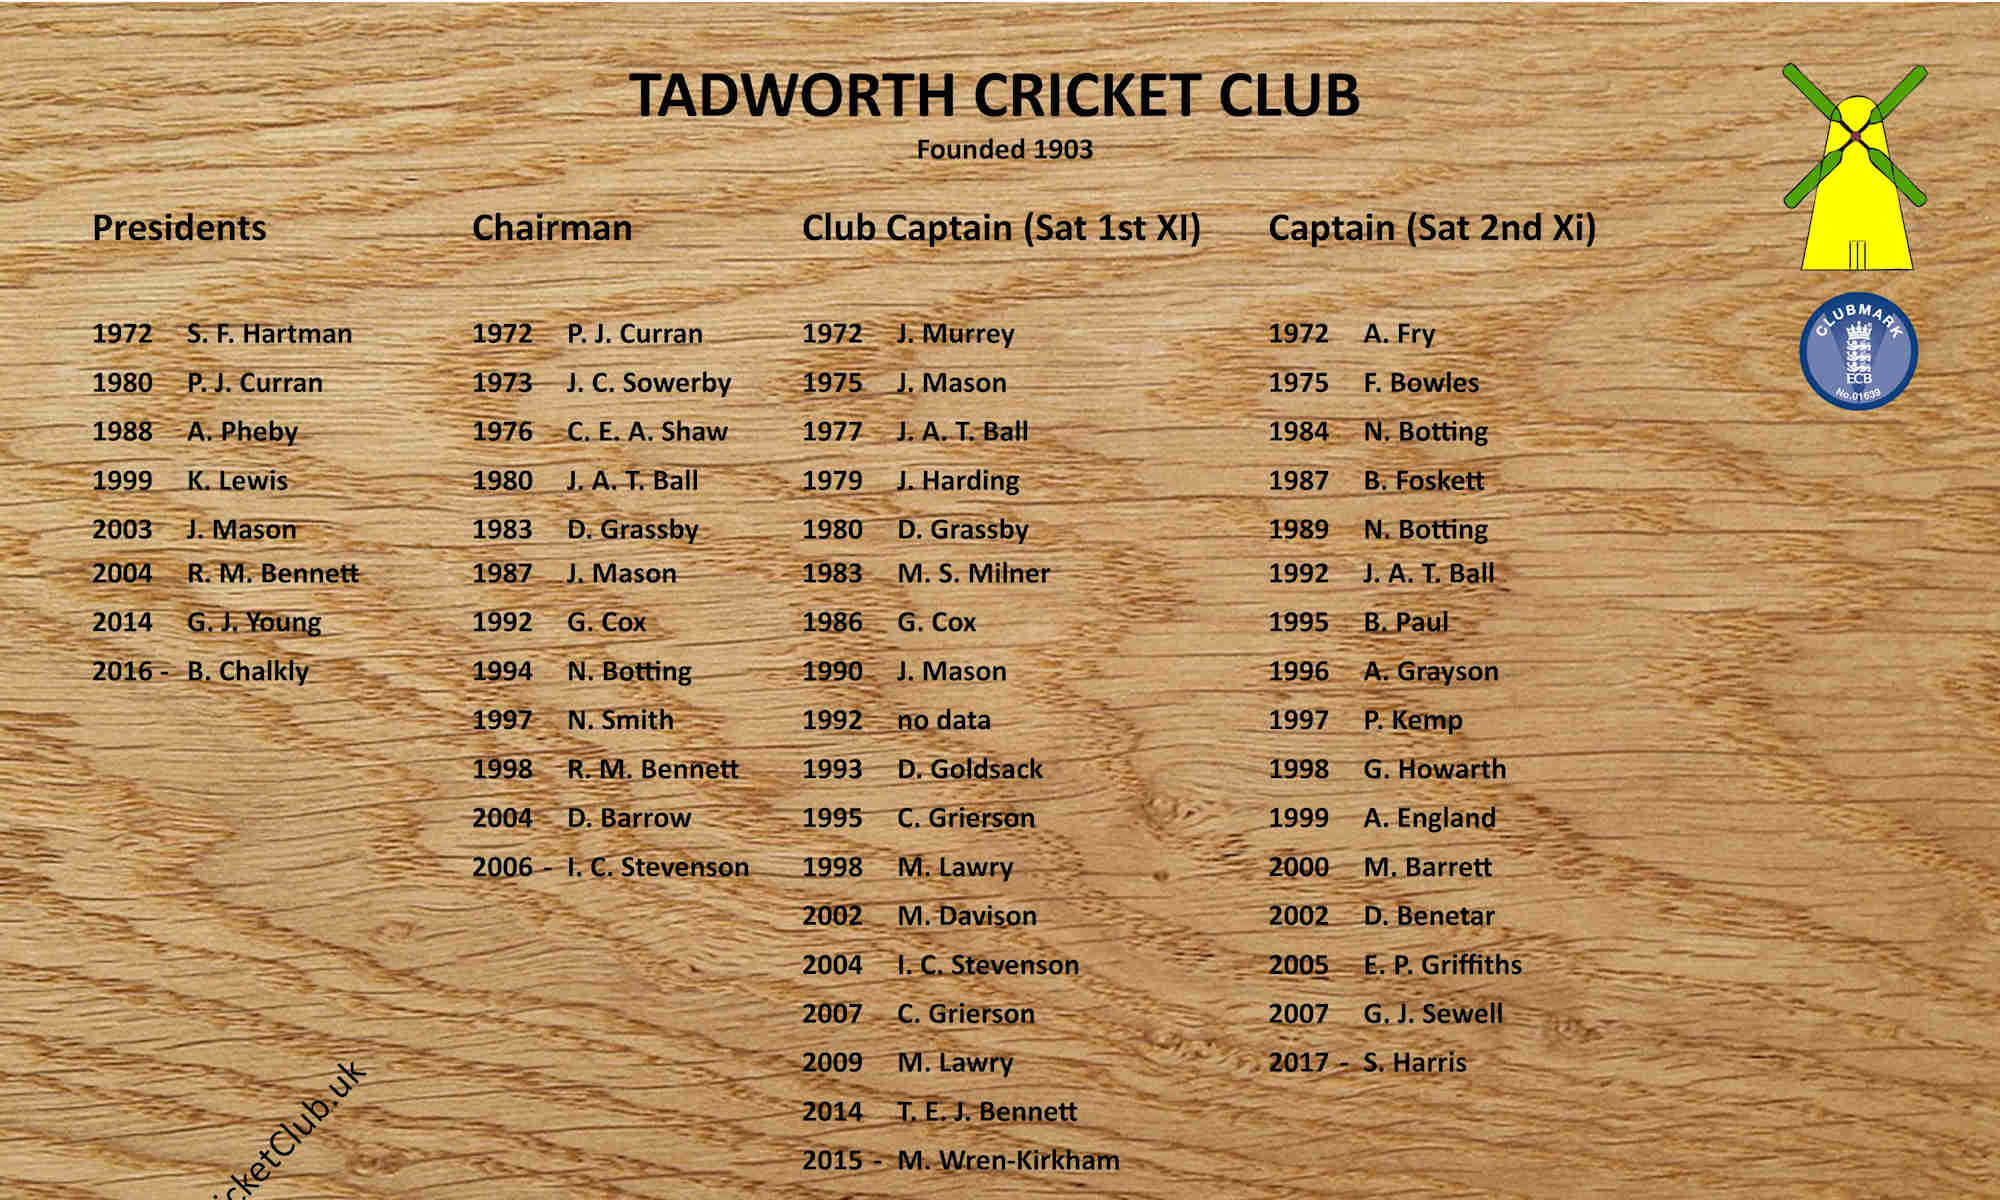 Tadworth Cricket Club